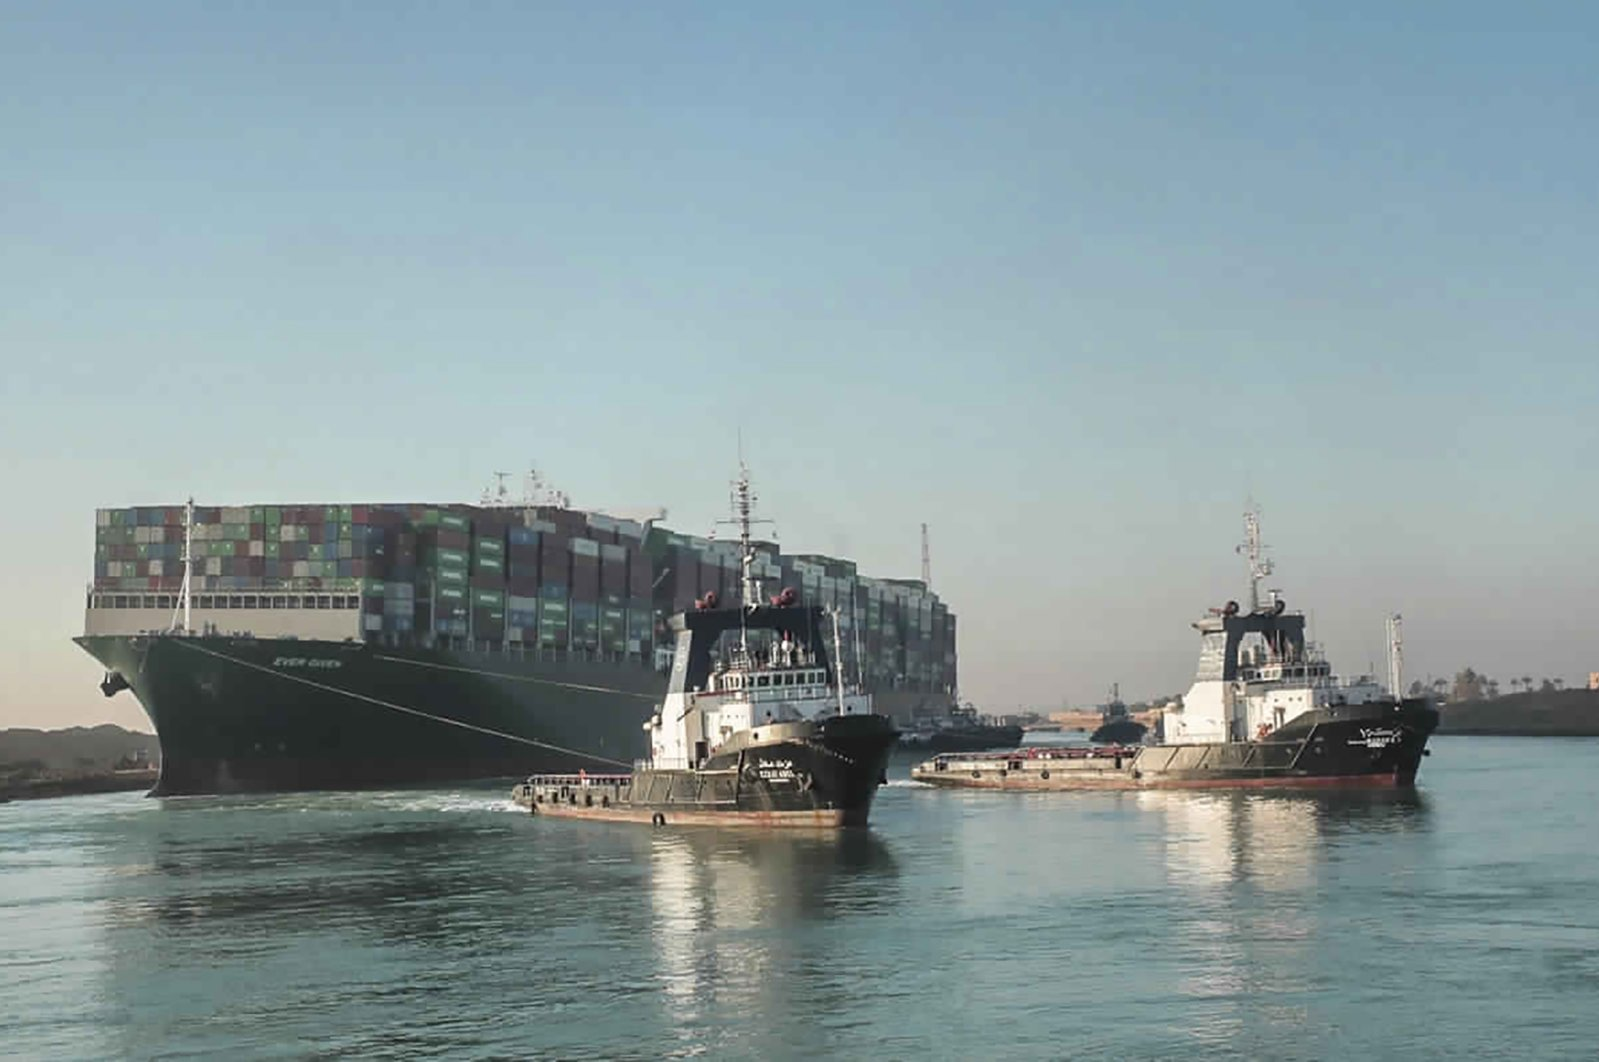 The Ever Given, a Panama-flagged cargo ship, is pulled by tugboats, in the Suez Canal, Egypt, March 29, 2021. (Suez Canal Authority via AP)